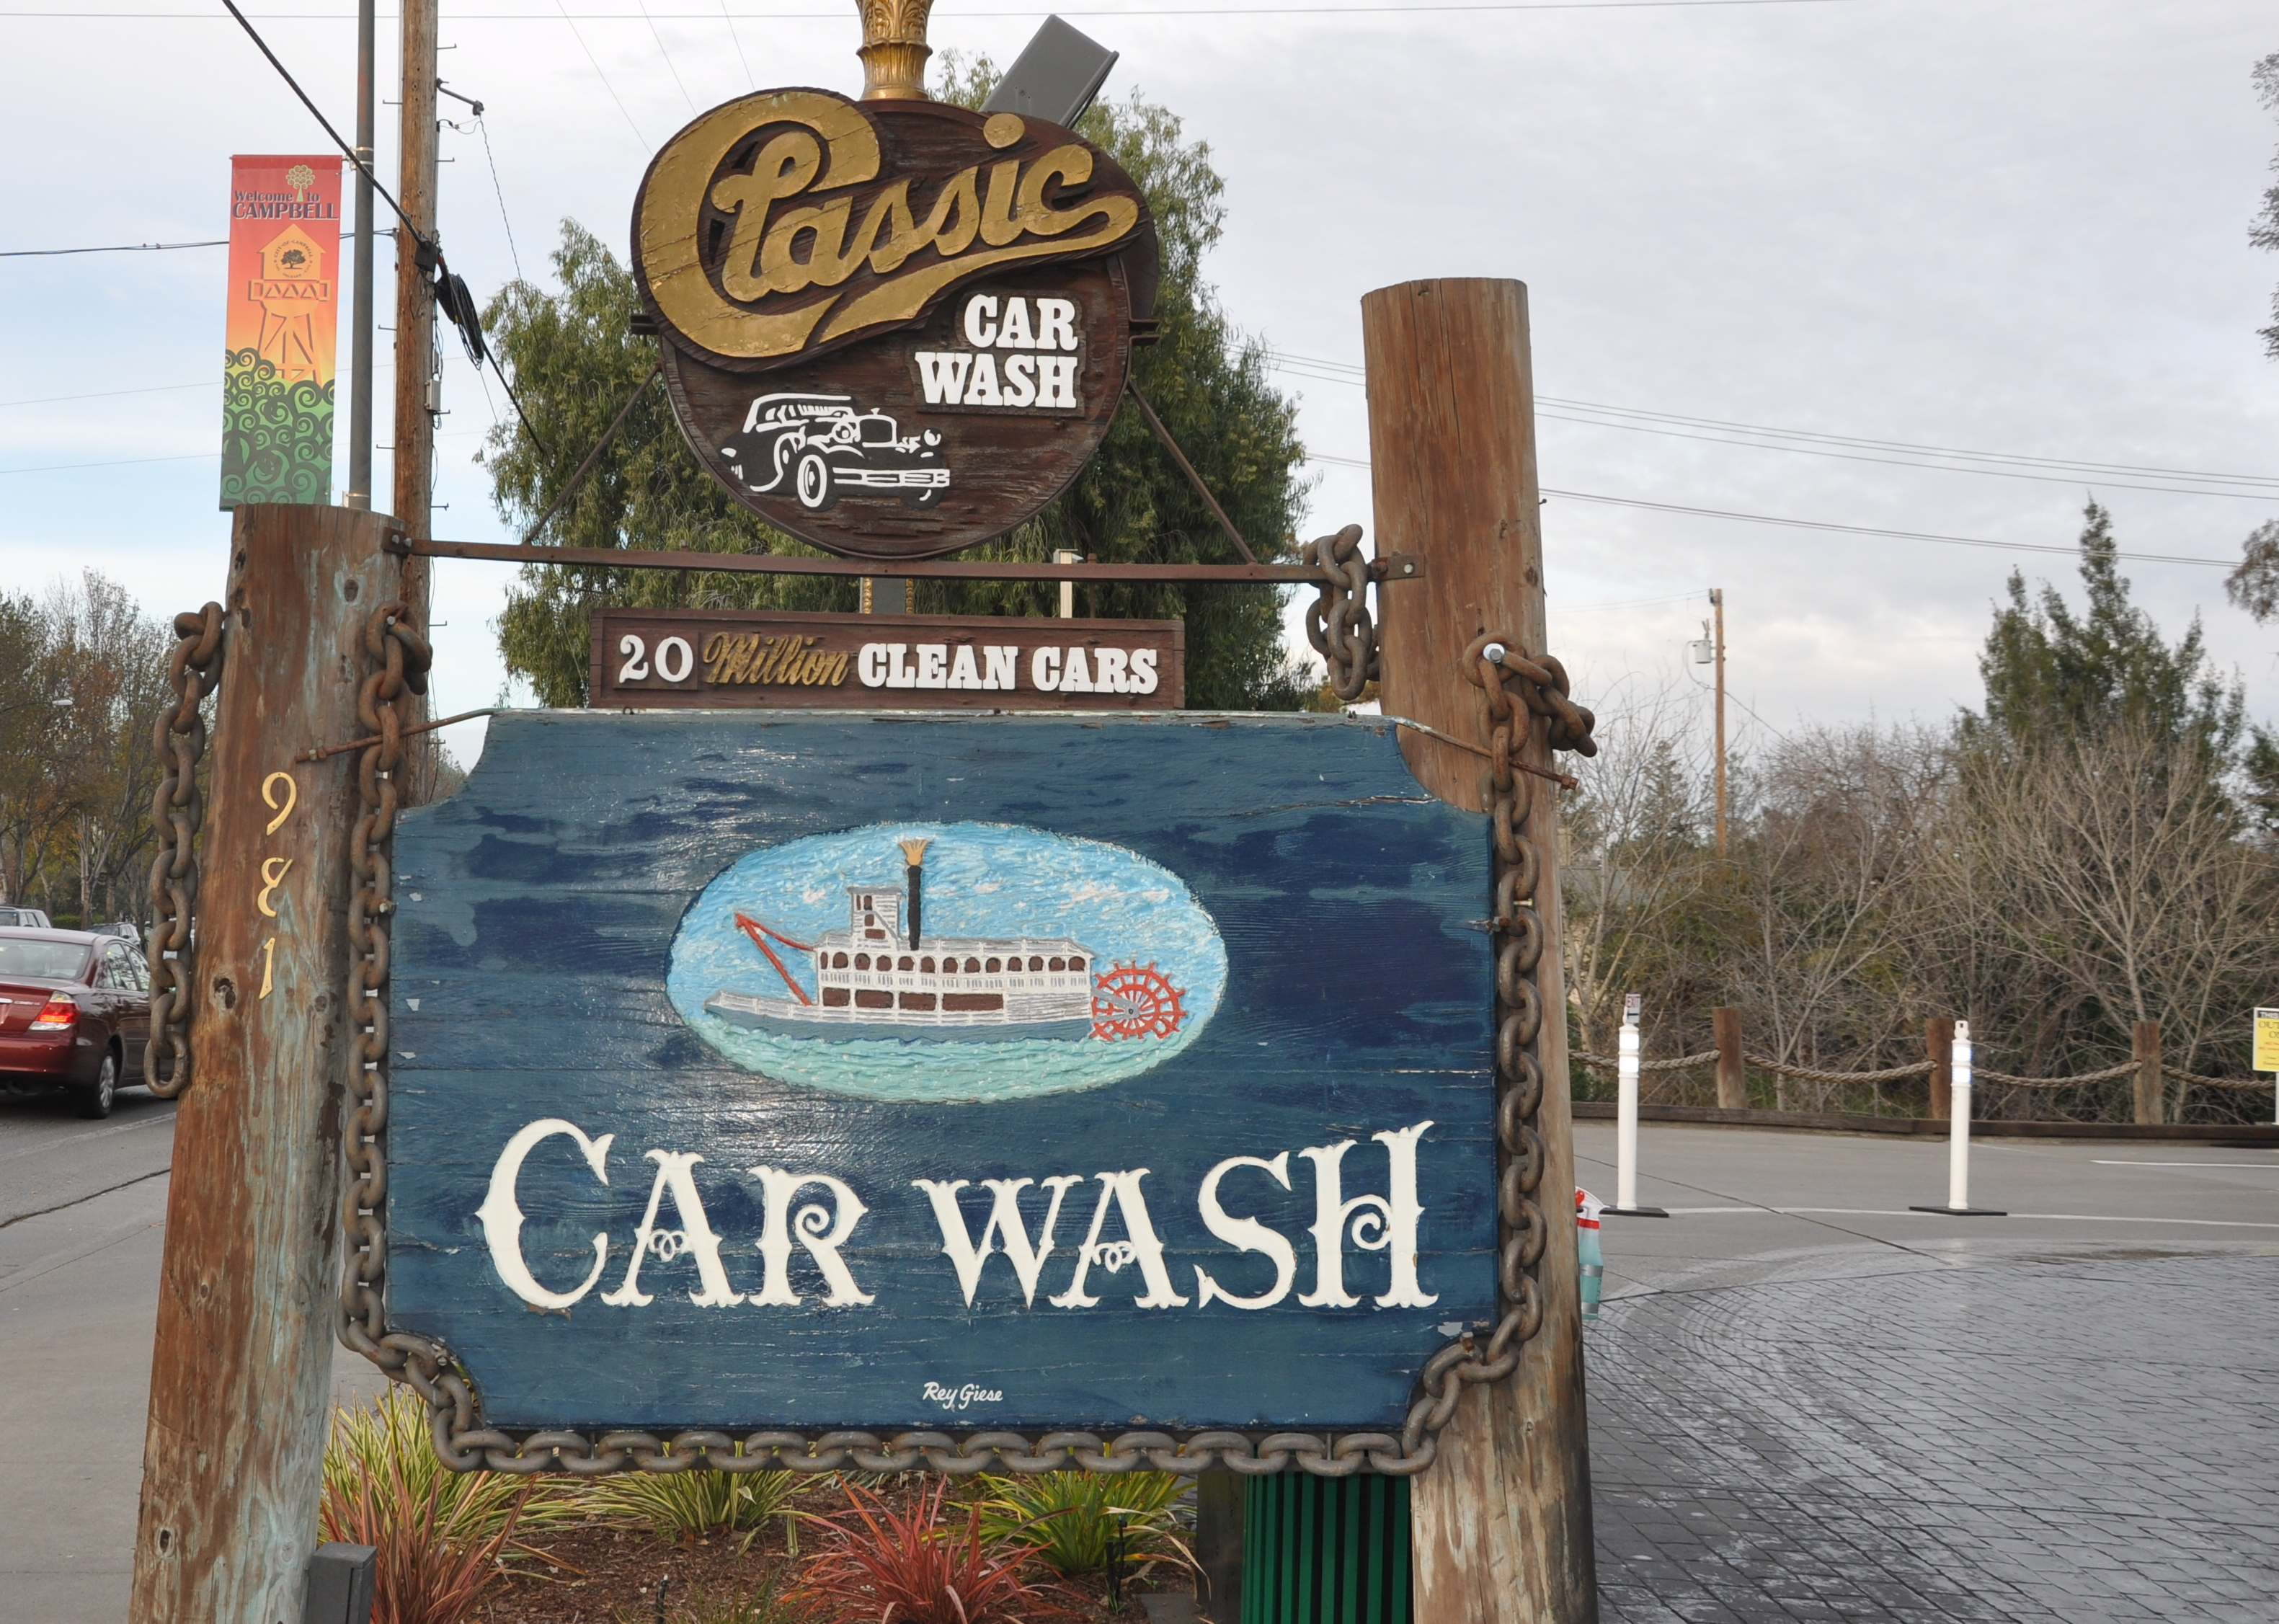 Delta Queen: Come for the Car Wash, Stay for the Charm – Gardening ...